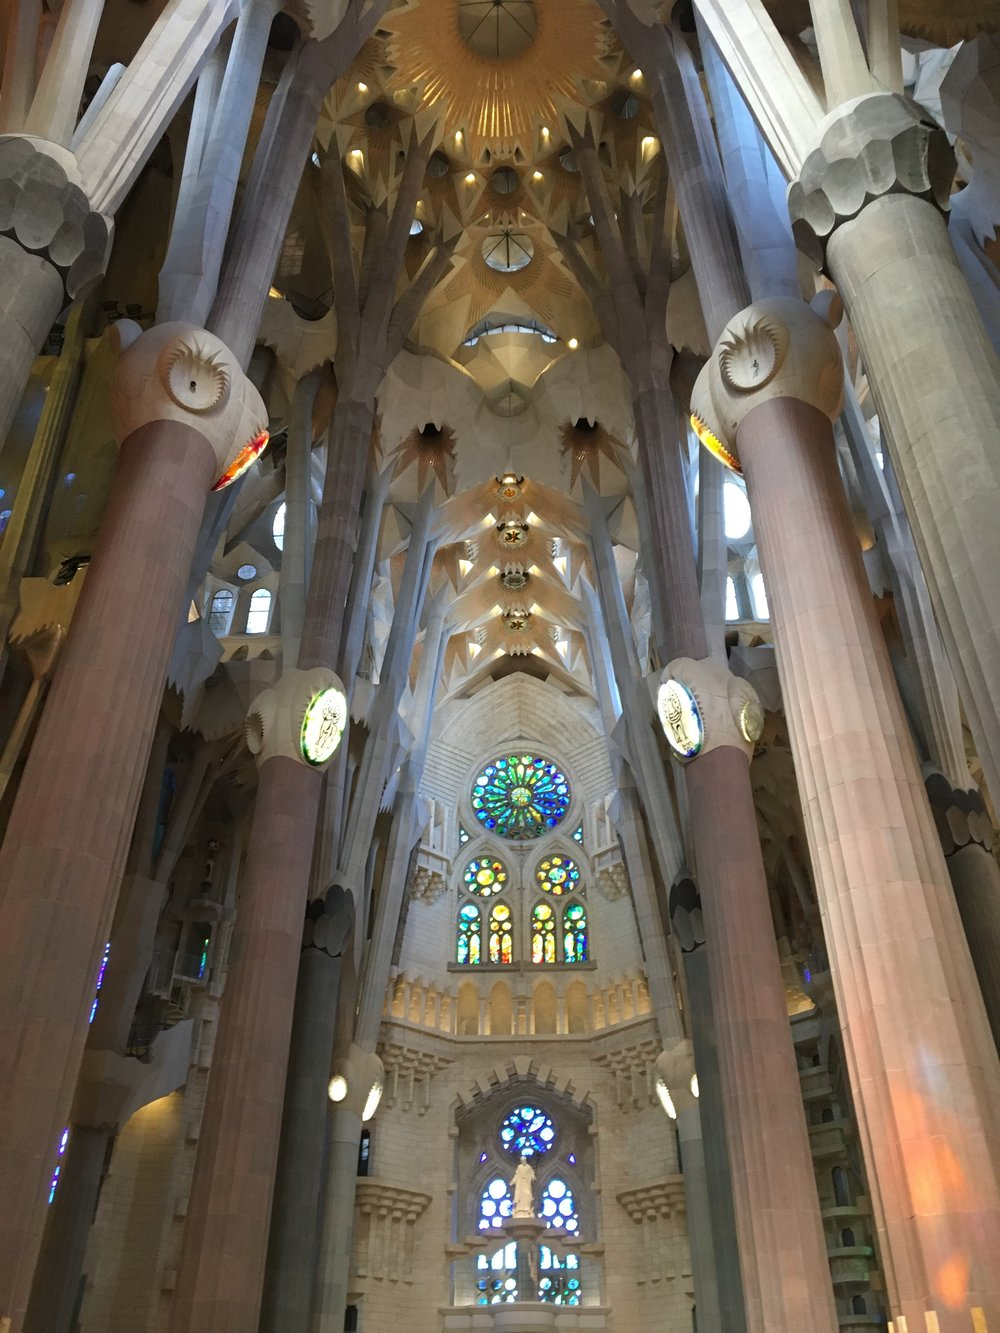 Sagrada Familia - Gaudi wanted the interior of his Cathedral to remind us of a forest, with columns reminscent of trees and rich colors found in the stained glass.